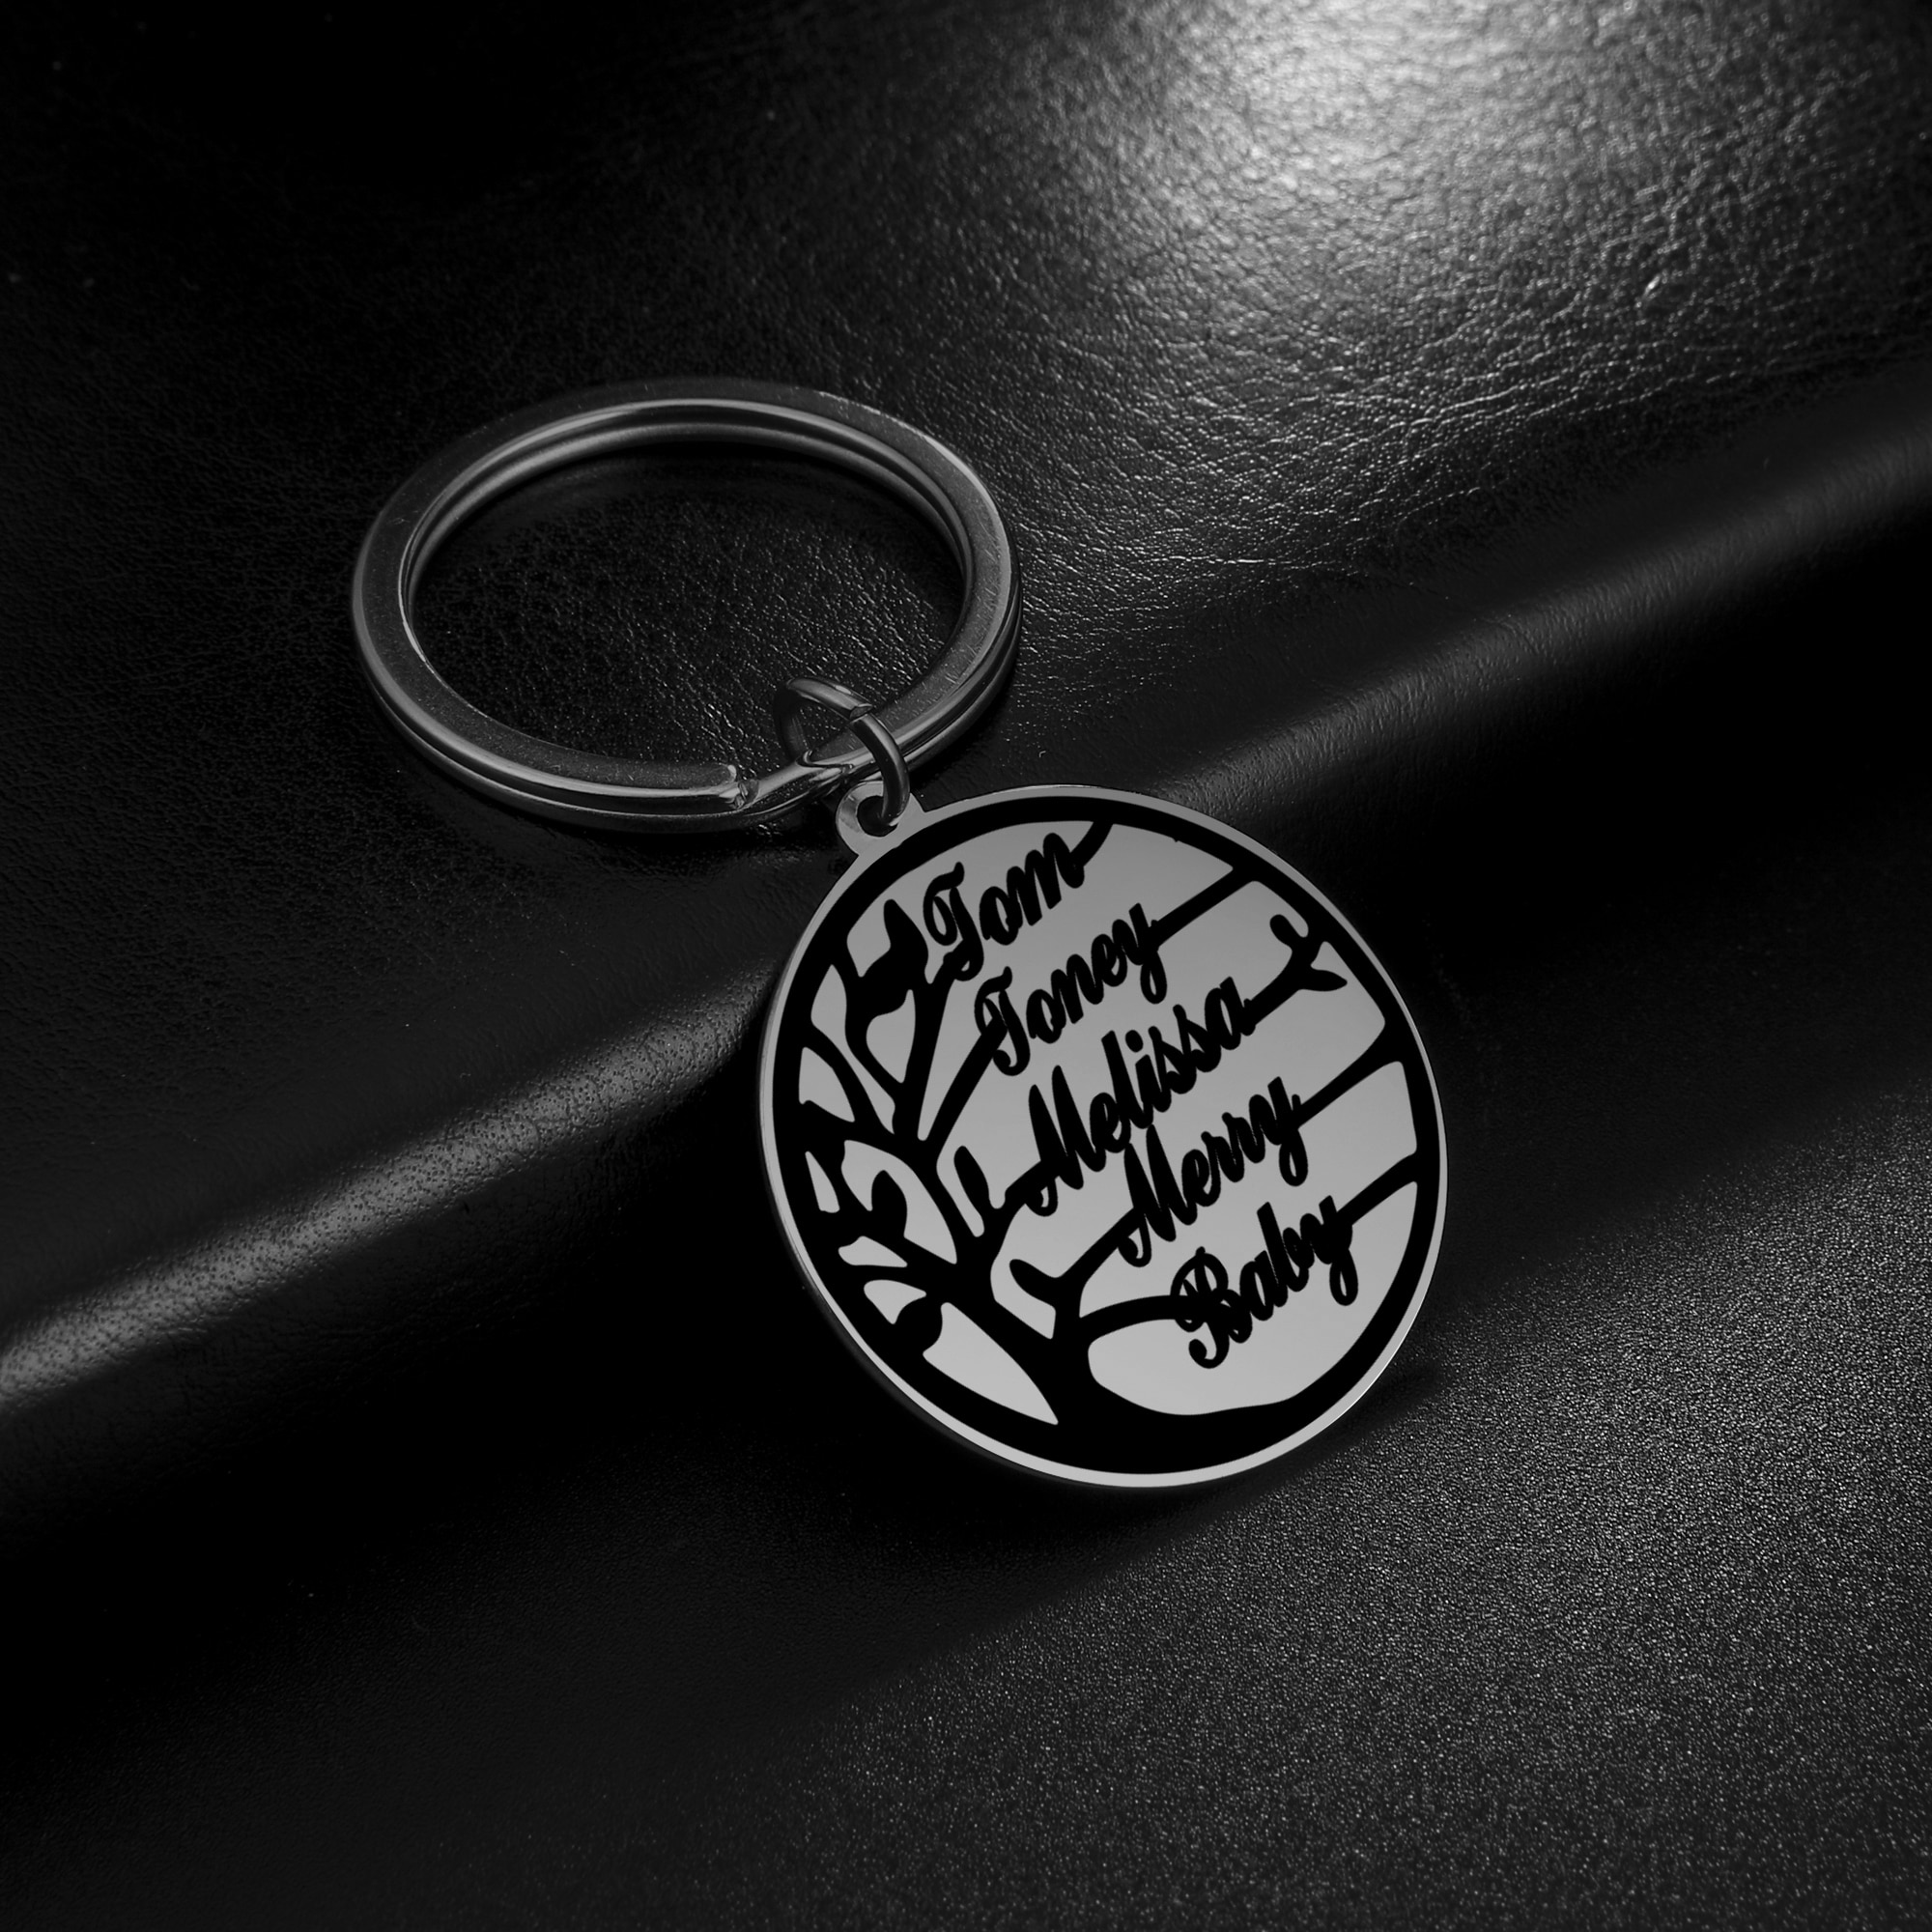 My Shape Stainless Steel Name Custom Keychain Family Tree of Life Personalized Customized Gold Silver Color Key Chain Ring Gift недорого